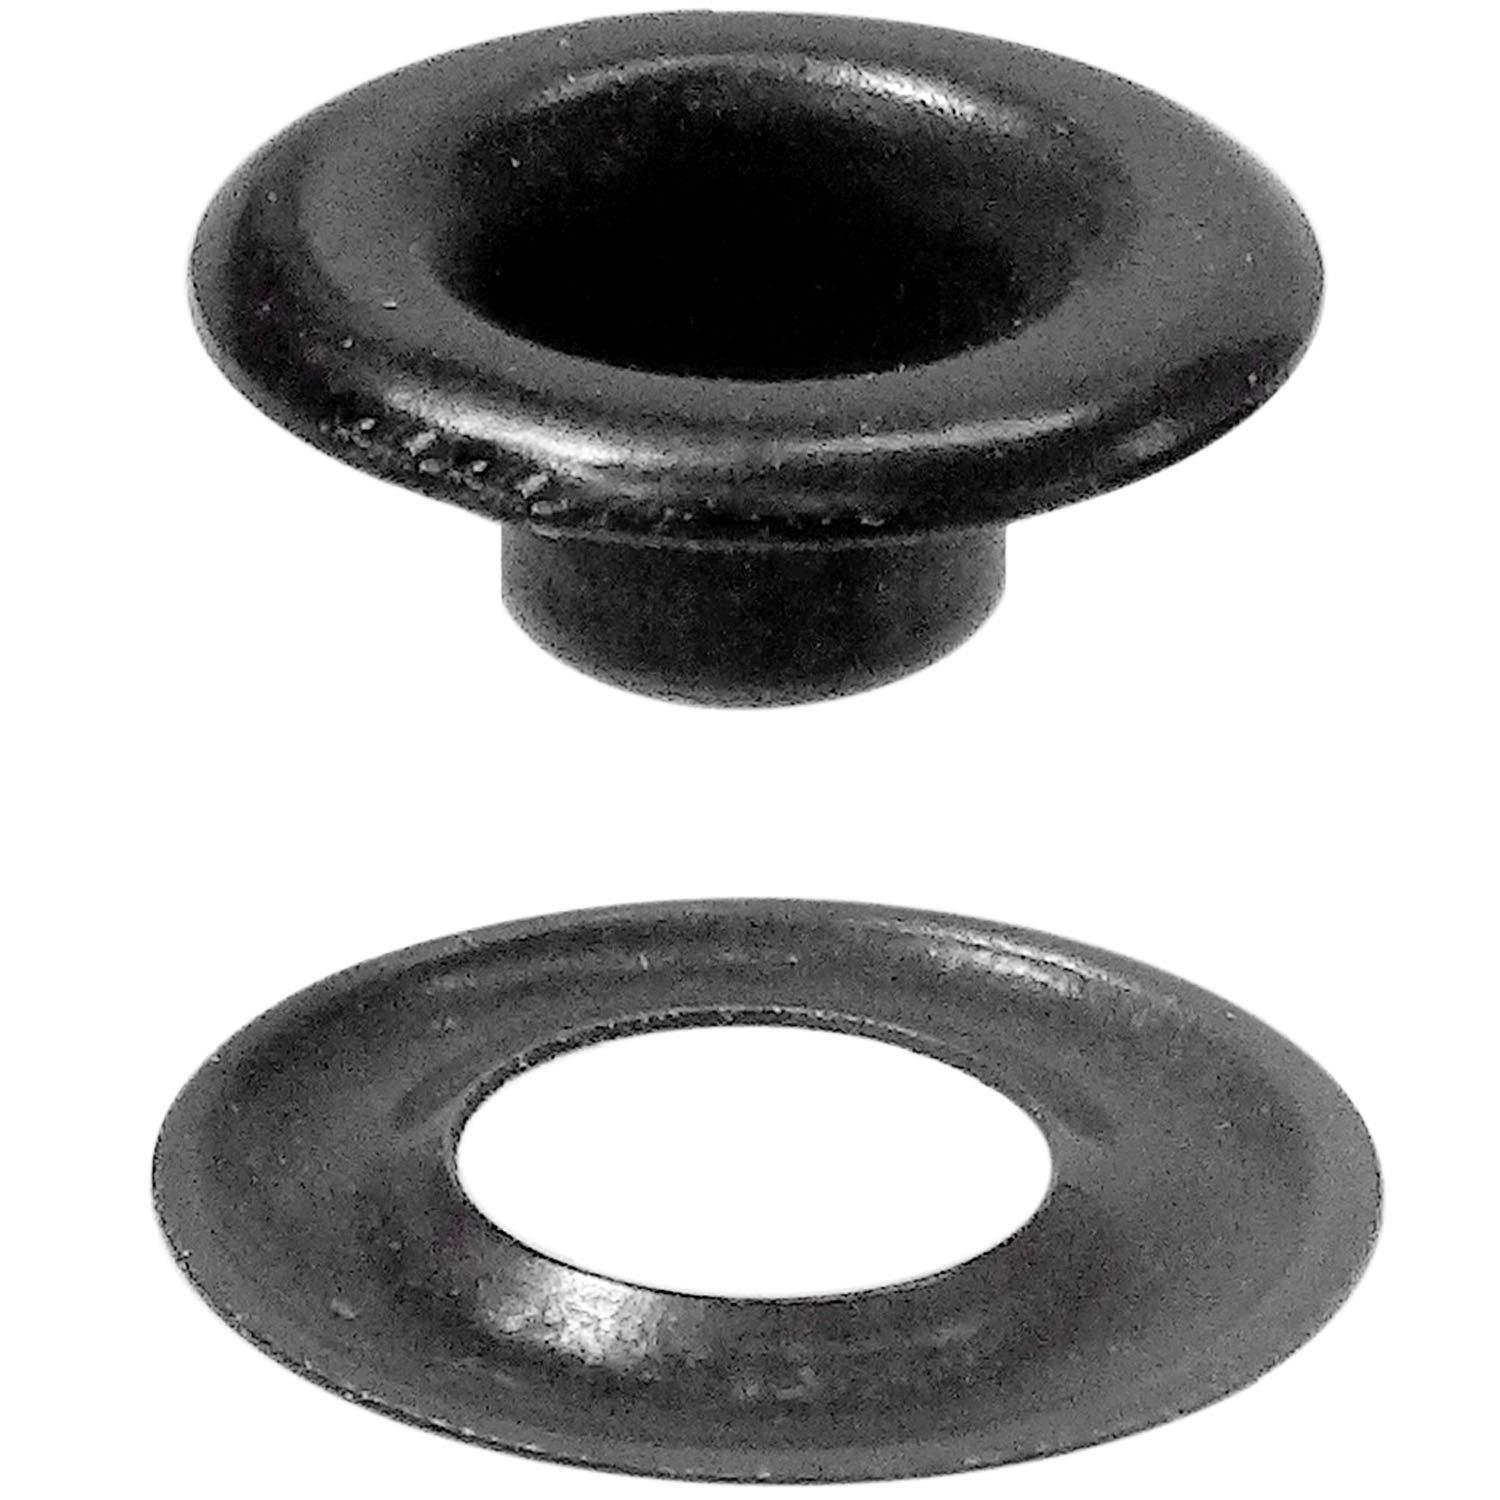 Stimpson Sheet Metal Grommet and Washer Dull Black Chem Durable, Reliable, Heavy-Duty #00 Set (1,440 pieces of each)